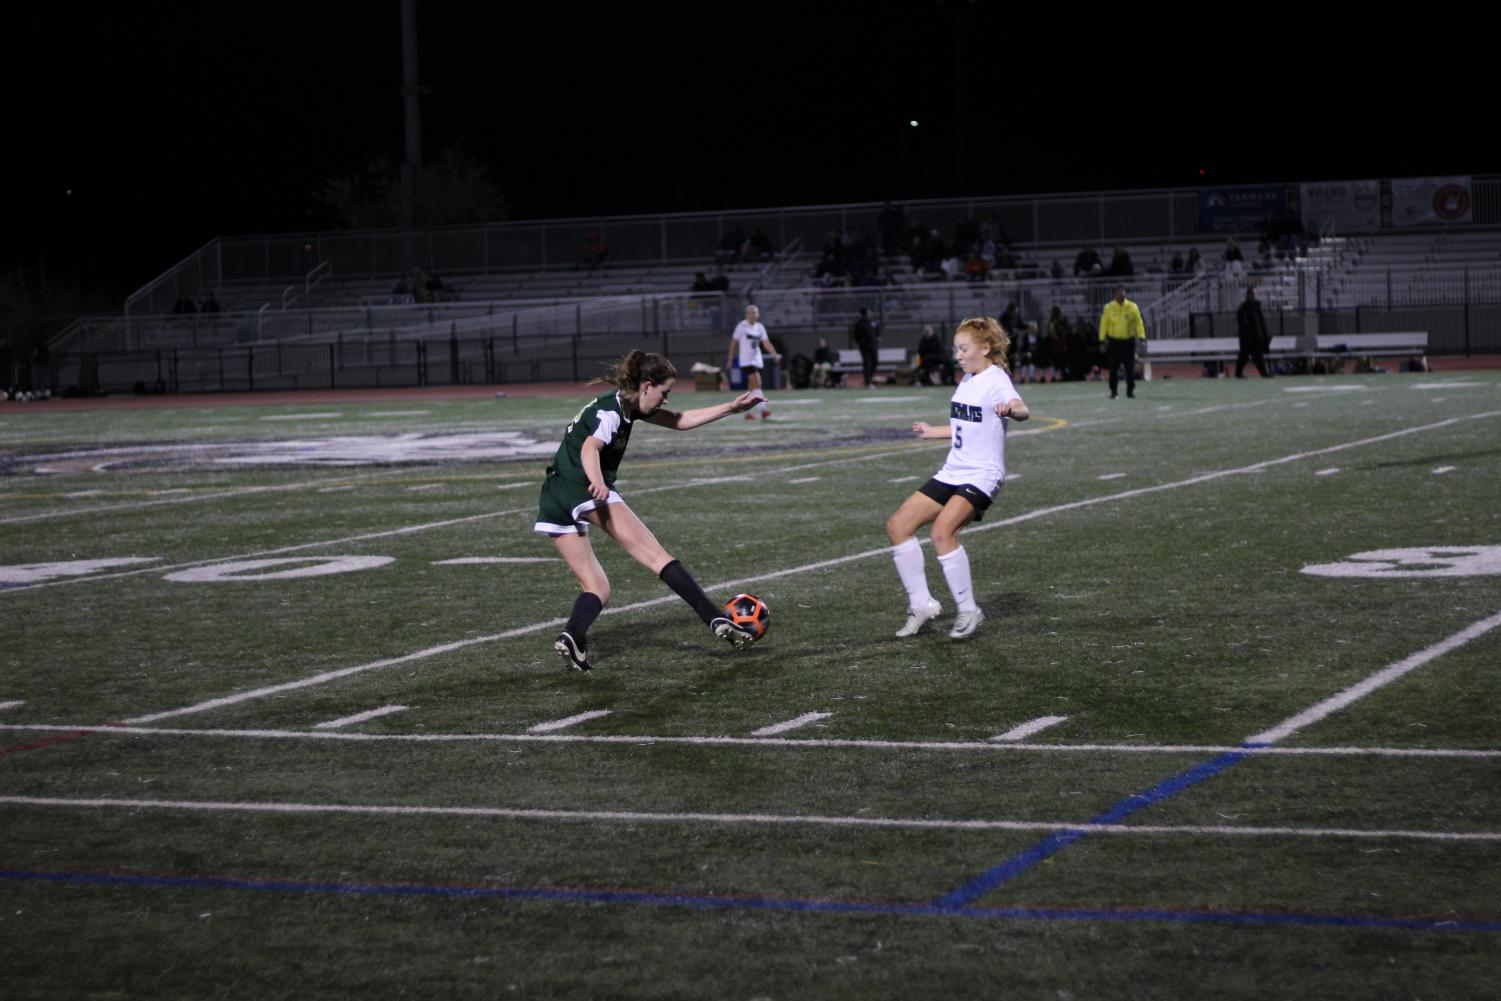 Girls+Soccer+v.+Mission+Vista+12%2F07%2F18+Photo+Gallery